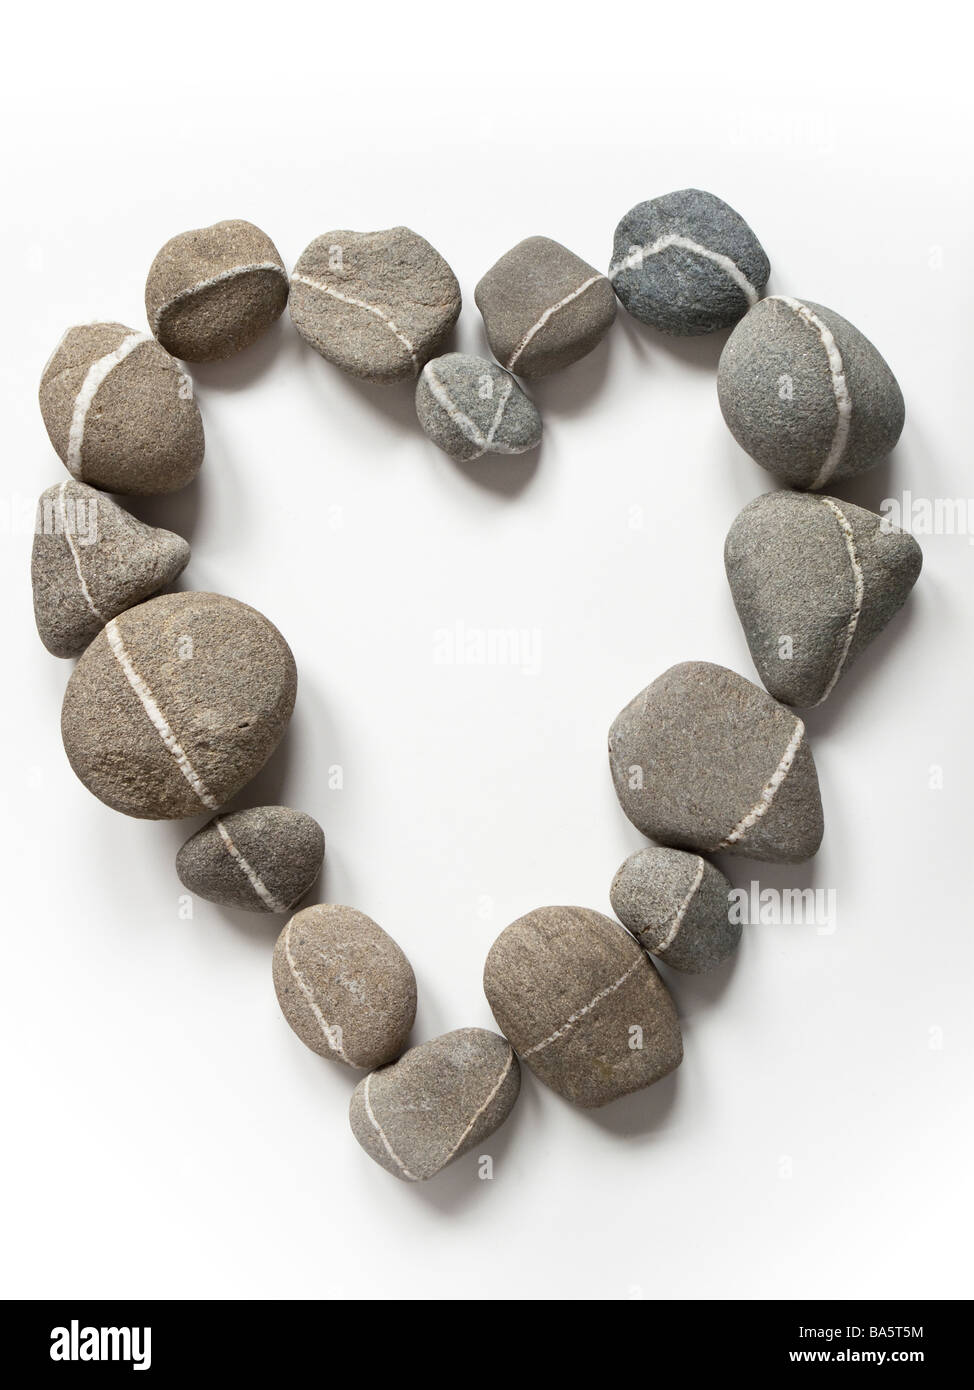 rocks forming a heart shape - Stock Image